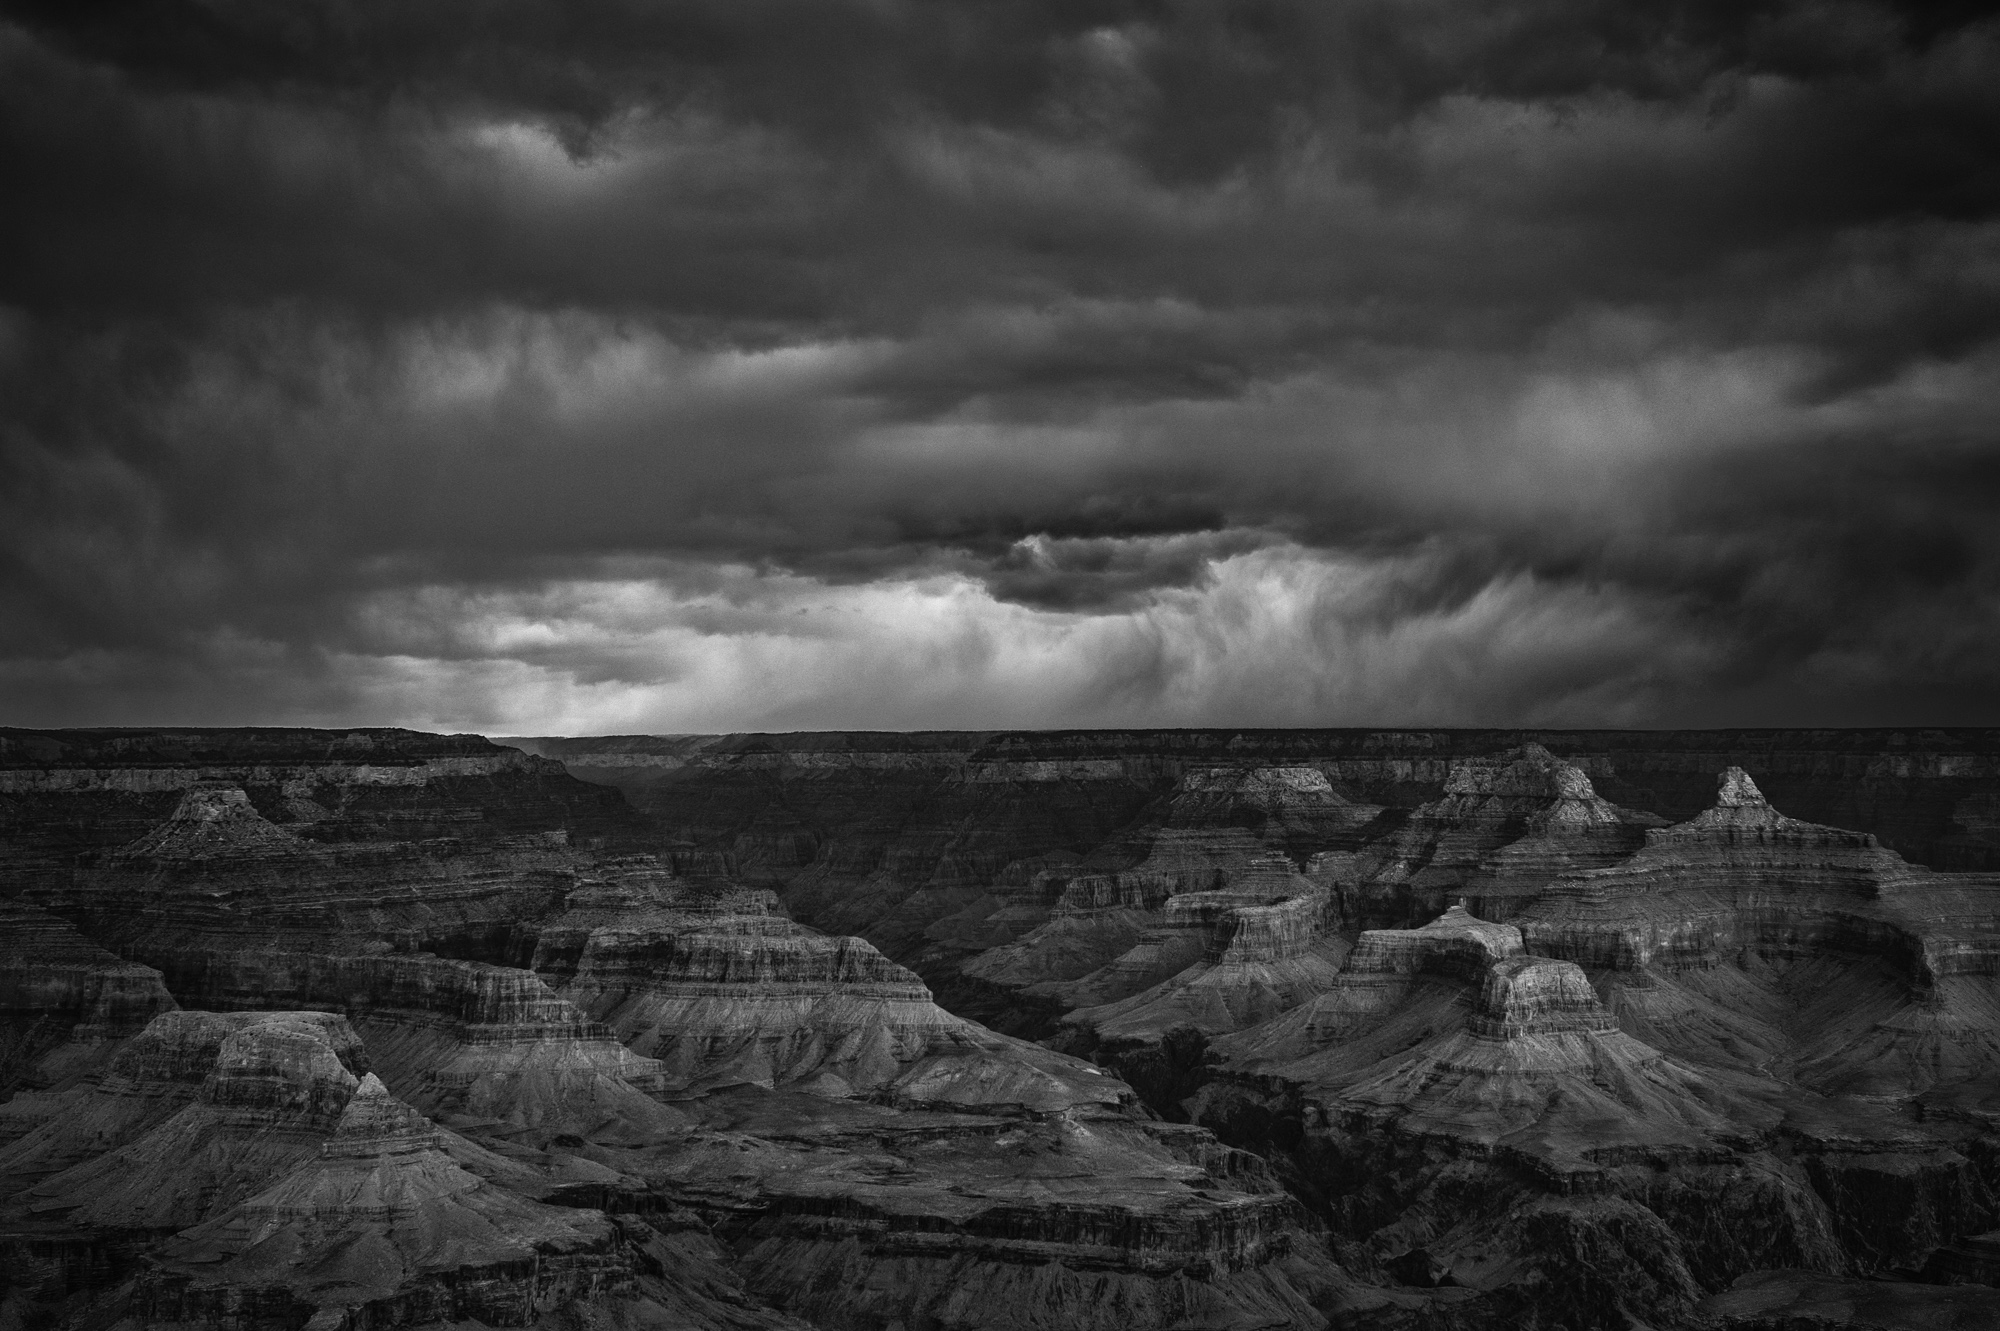 There was so much character and interest in the clouds during the storm, I thought they would look great in black and white. Very moody.